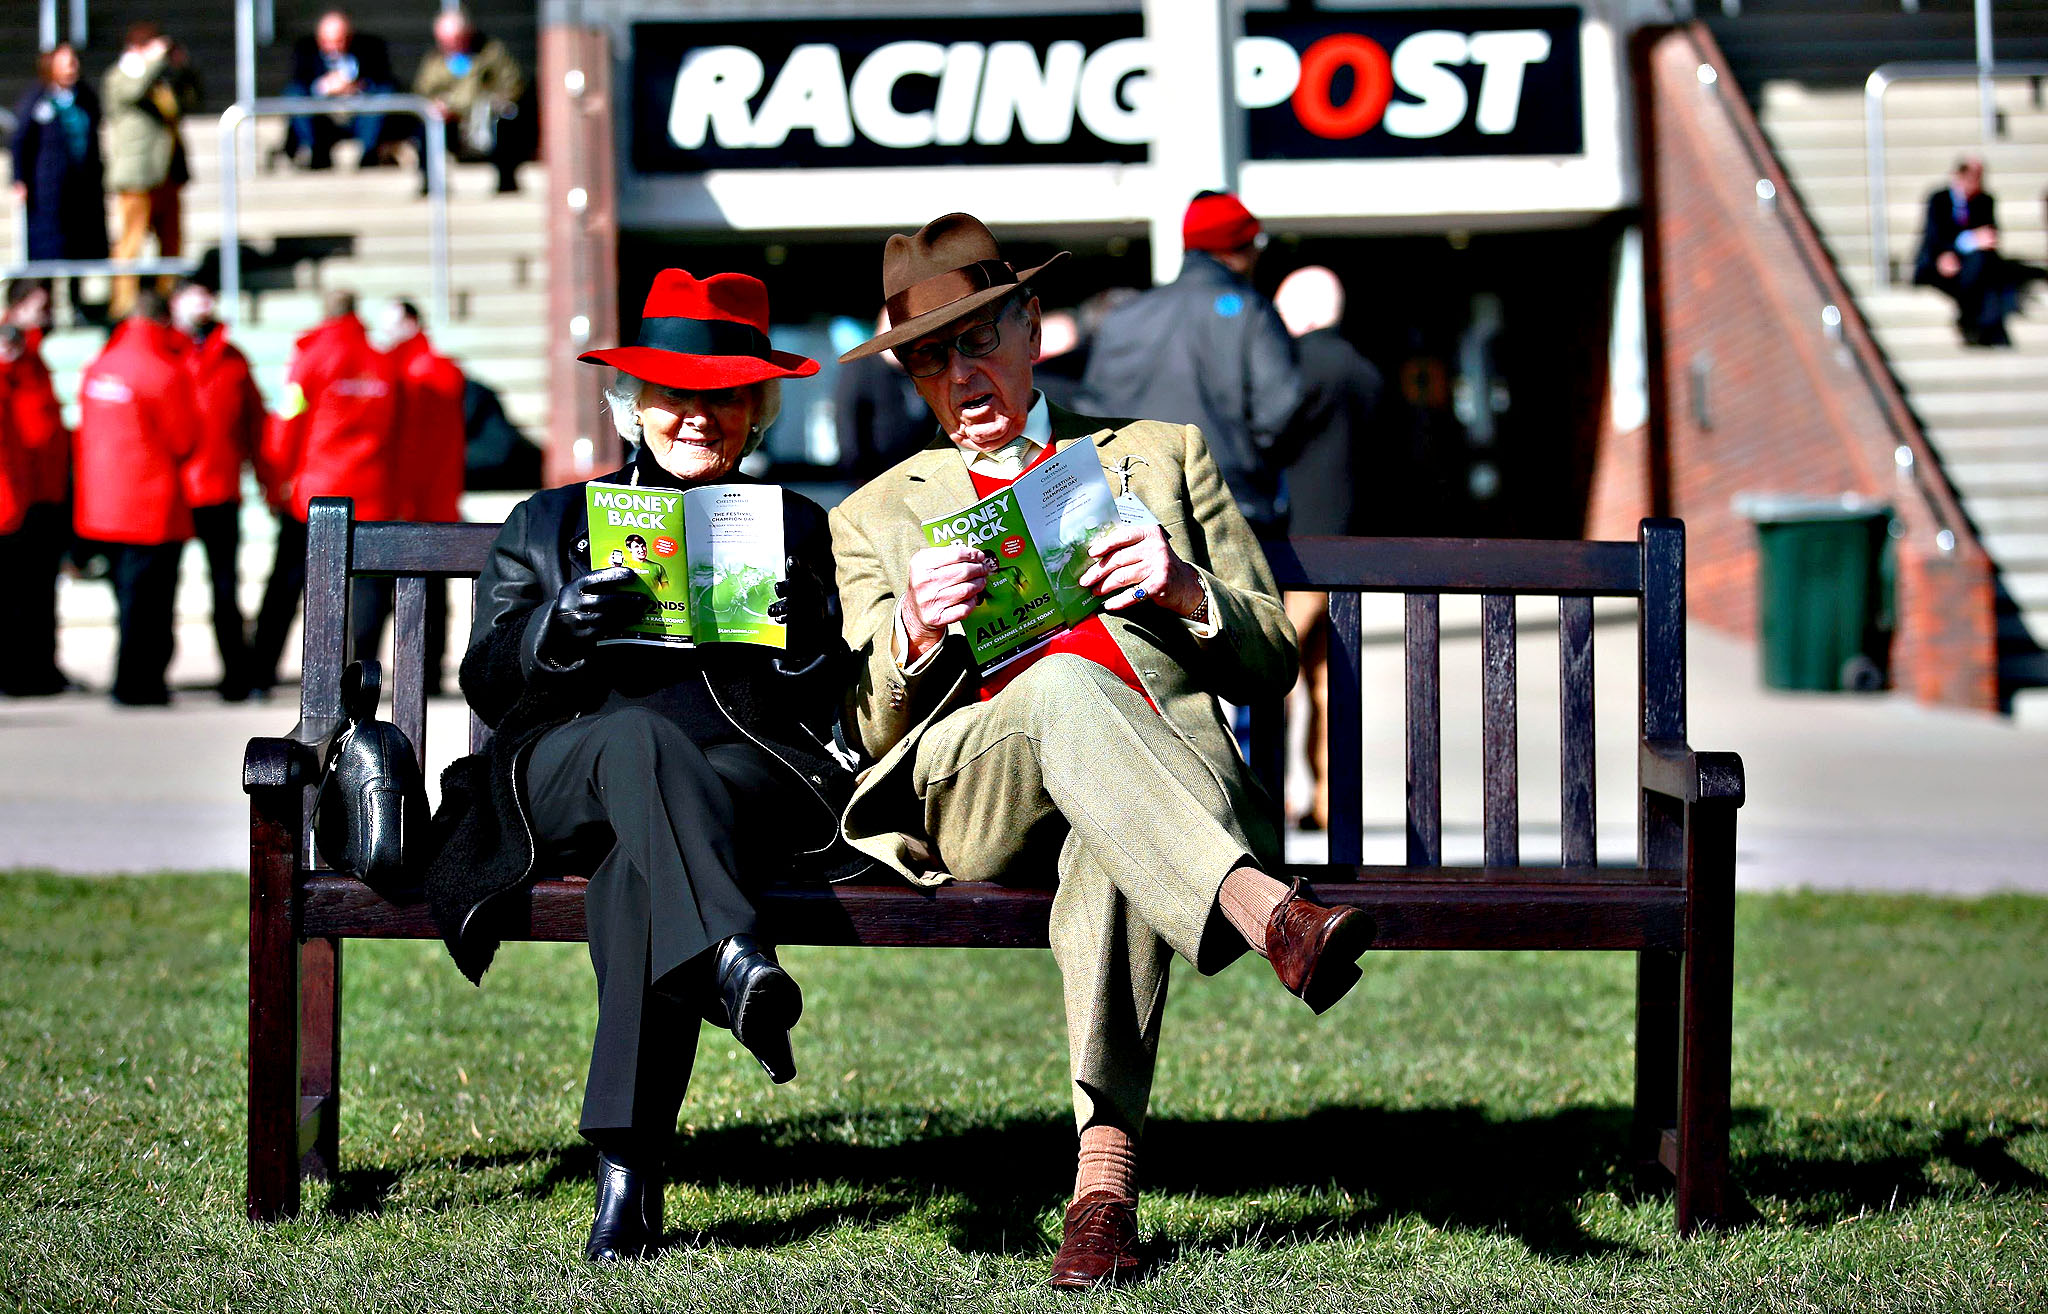 Race goers check the form on Champion Day, during the Cheltenham Festival at Cheltenham Racecourse. PRESS ASSOCIATION Photo. Picture date: Tuesday March 10, 2015.